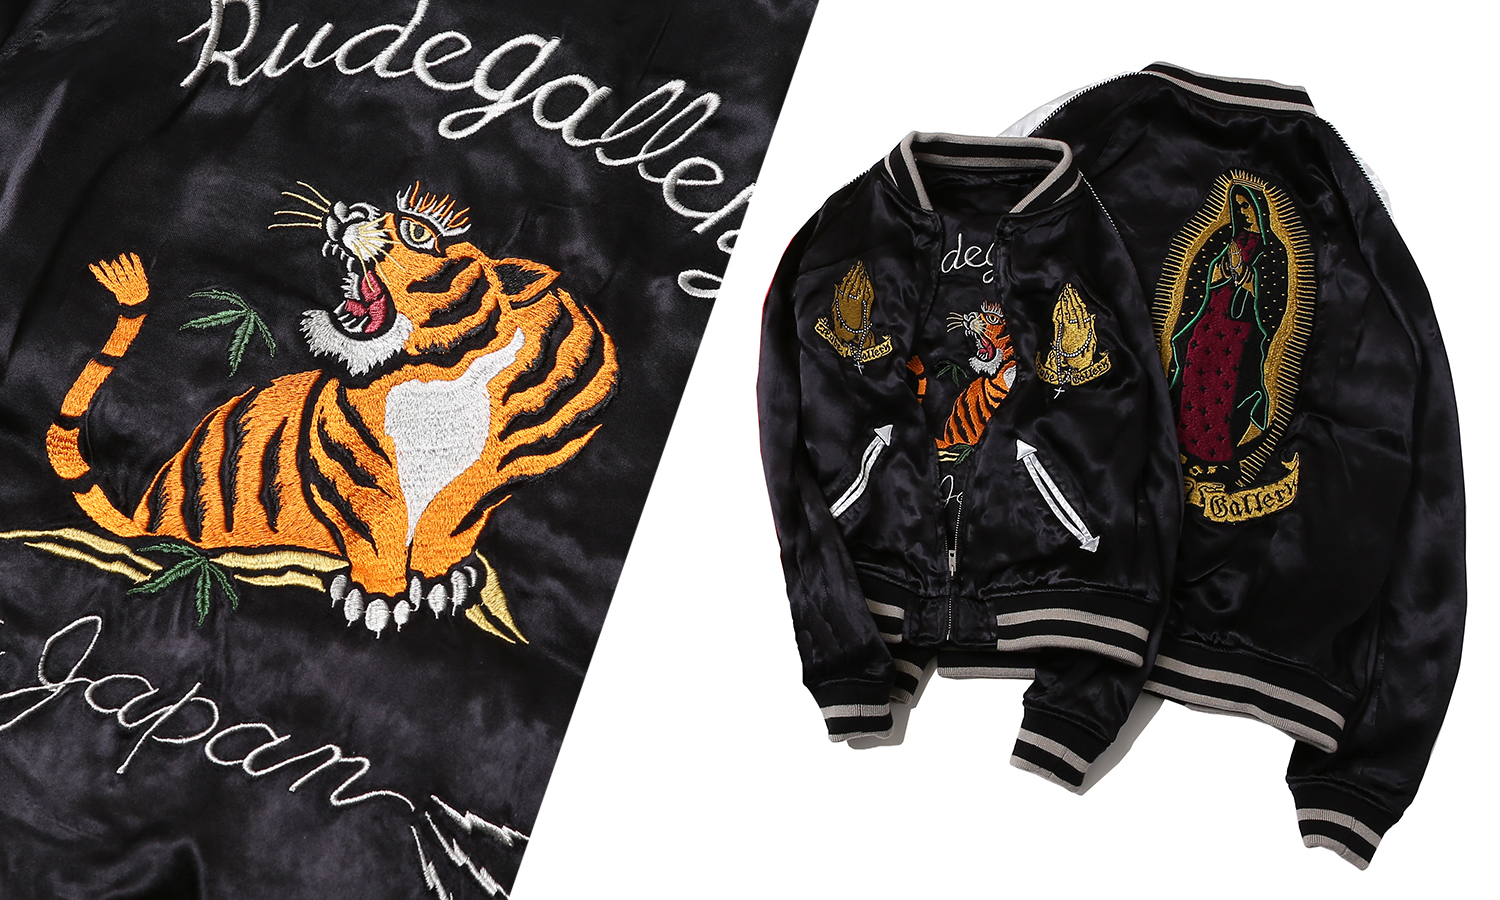 RUDE GALLERY -STONED TIGER x MARIA SOUVENIR JACKET-